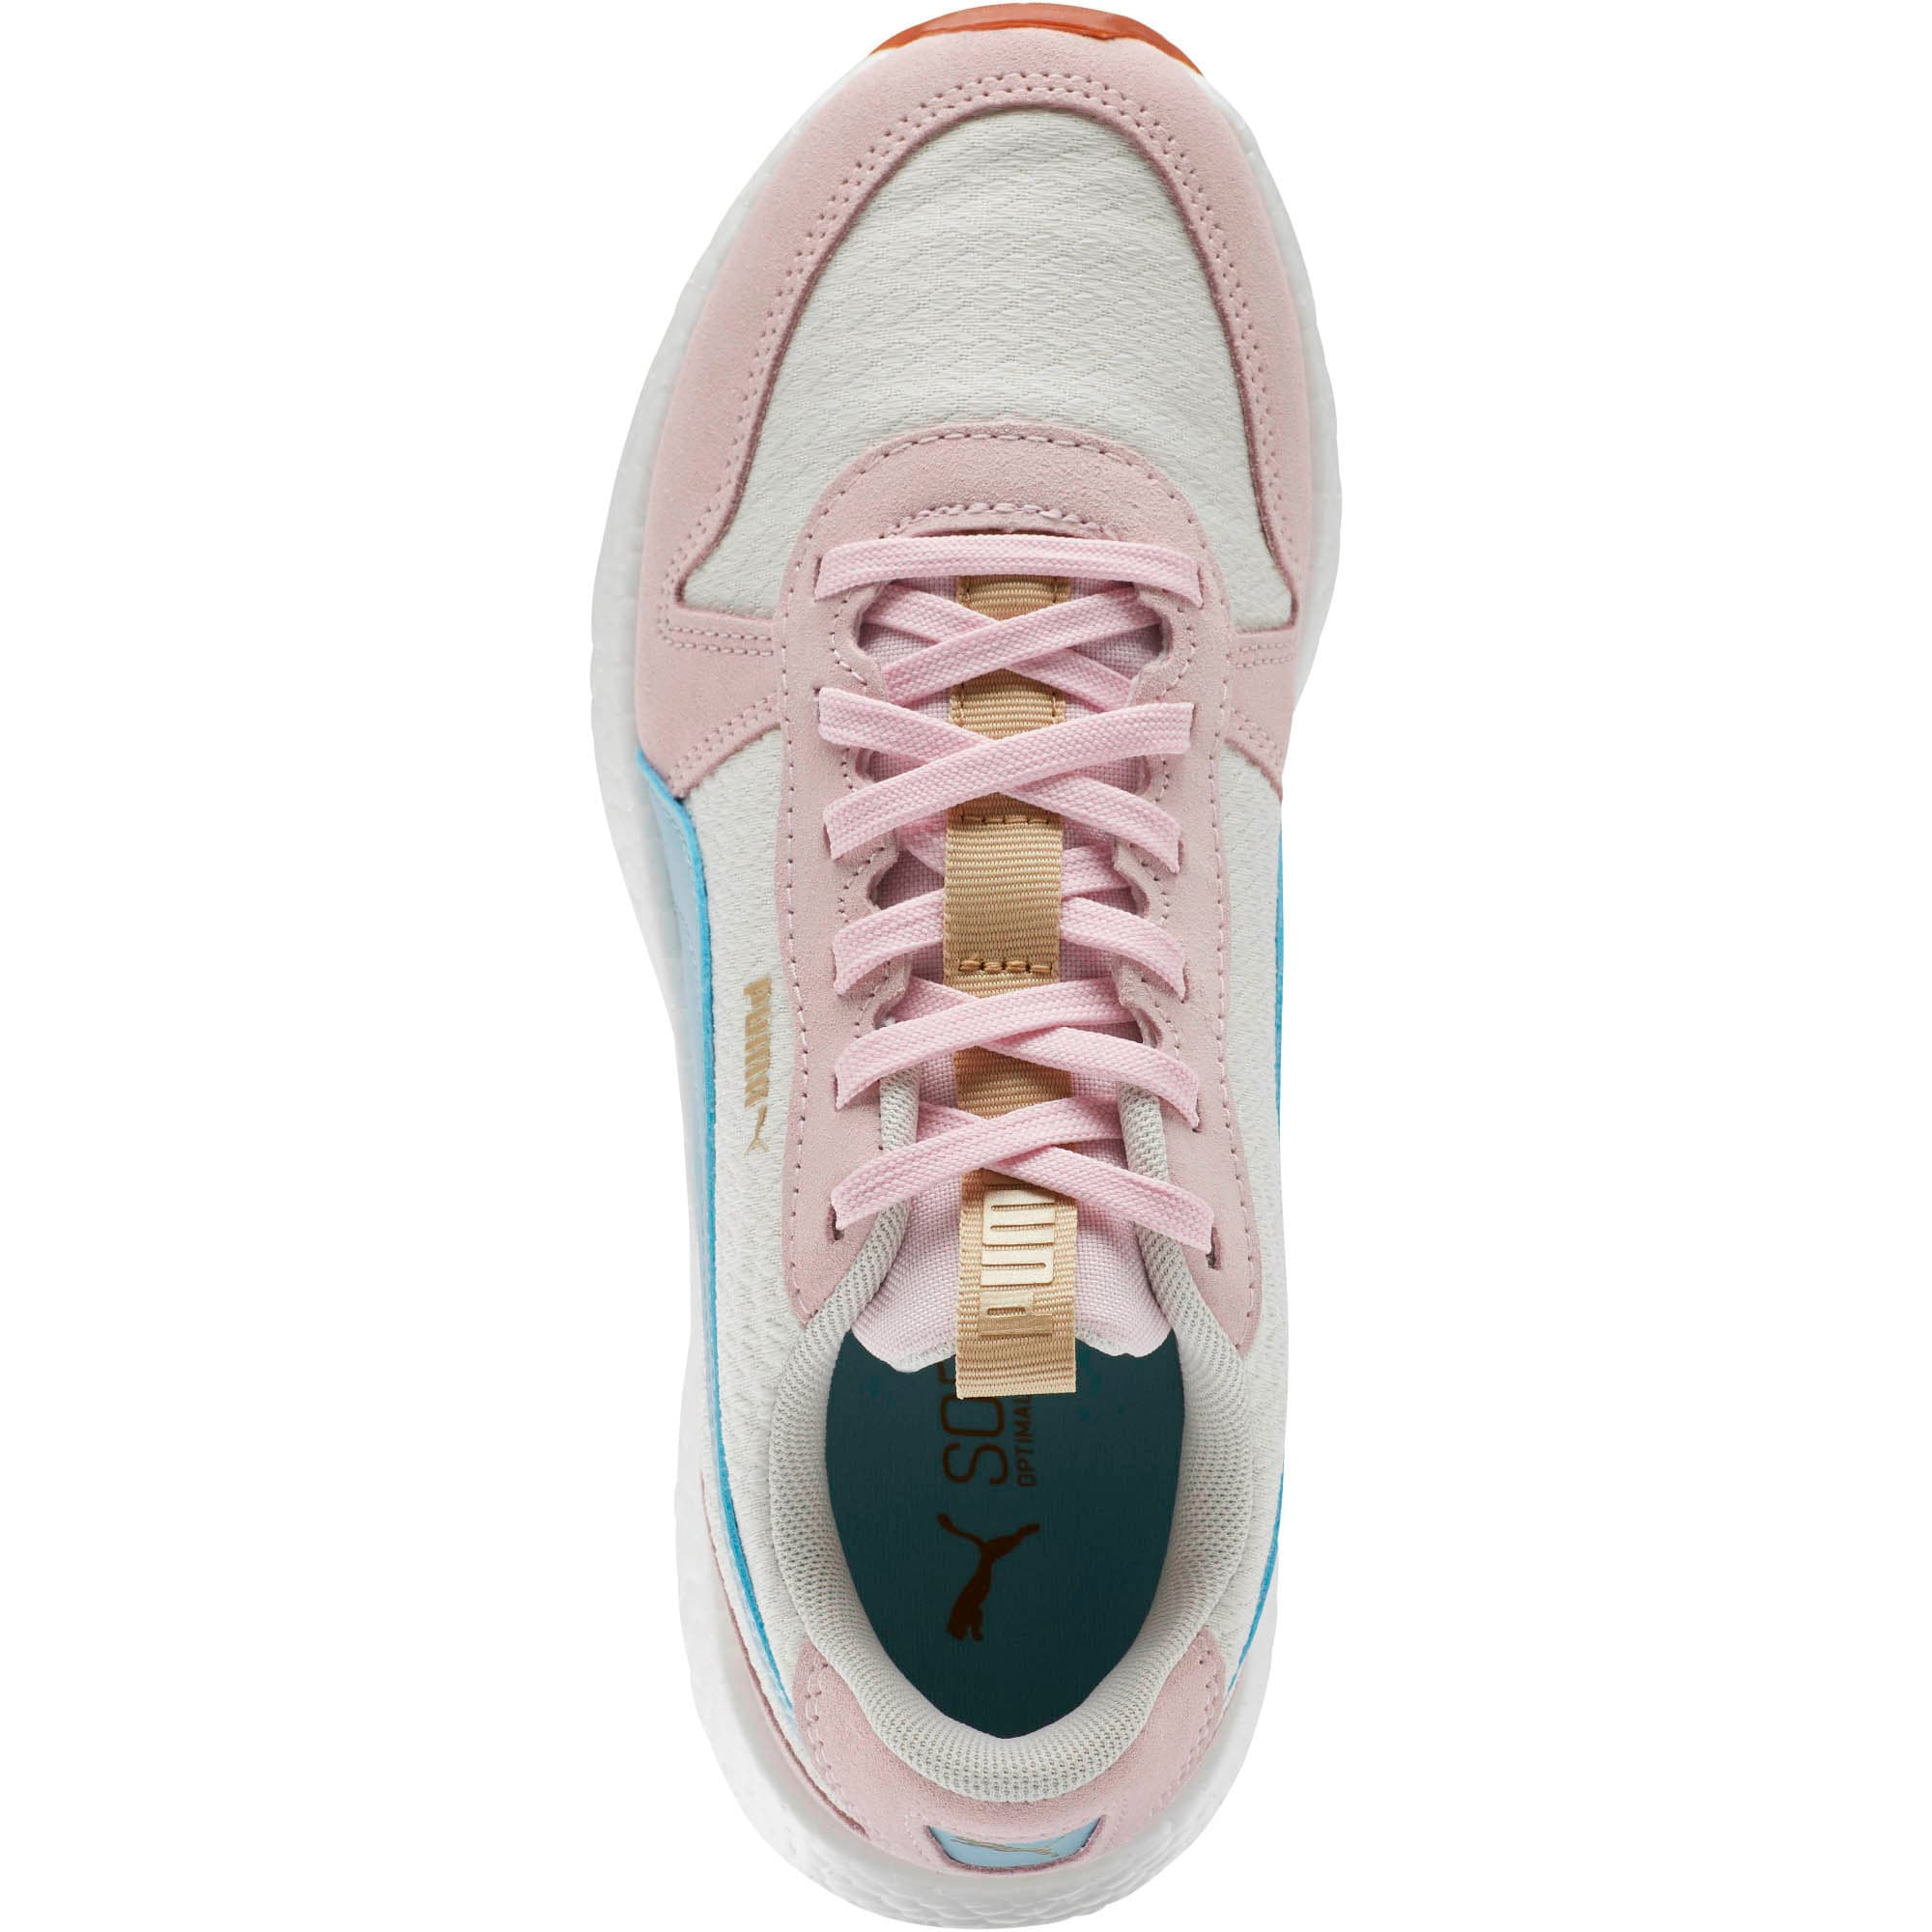 Thumbnail 5 of NRGY Neko Retro Sweet Women's Street Running Shoes, Whisper White-Pink-Sky, medium